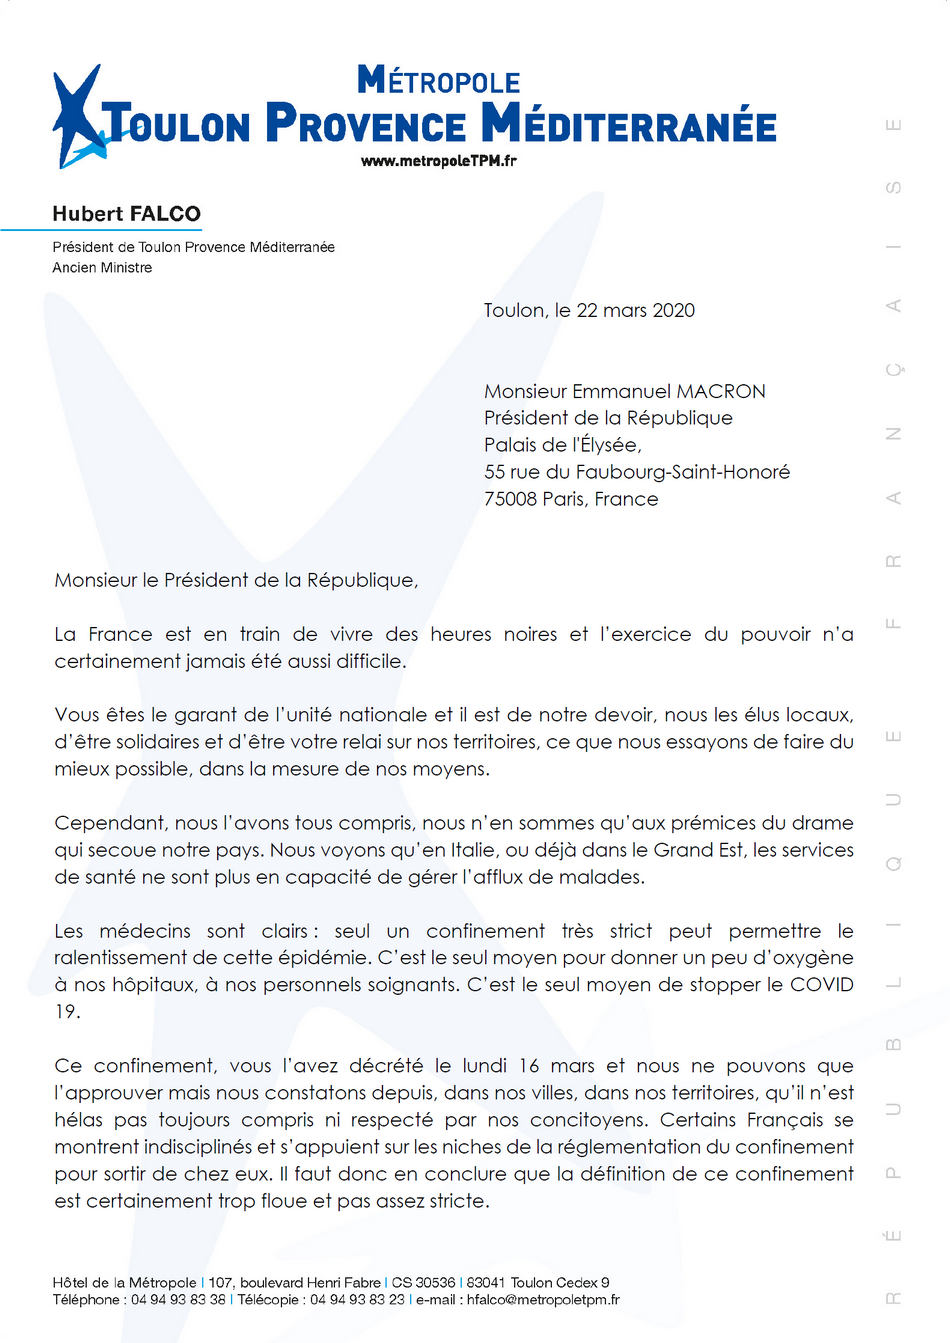 Courrier d'Hubert Falco au Pre´sident de la Re´publique